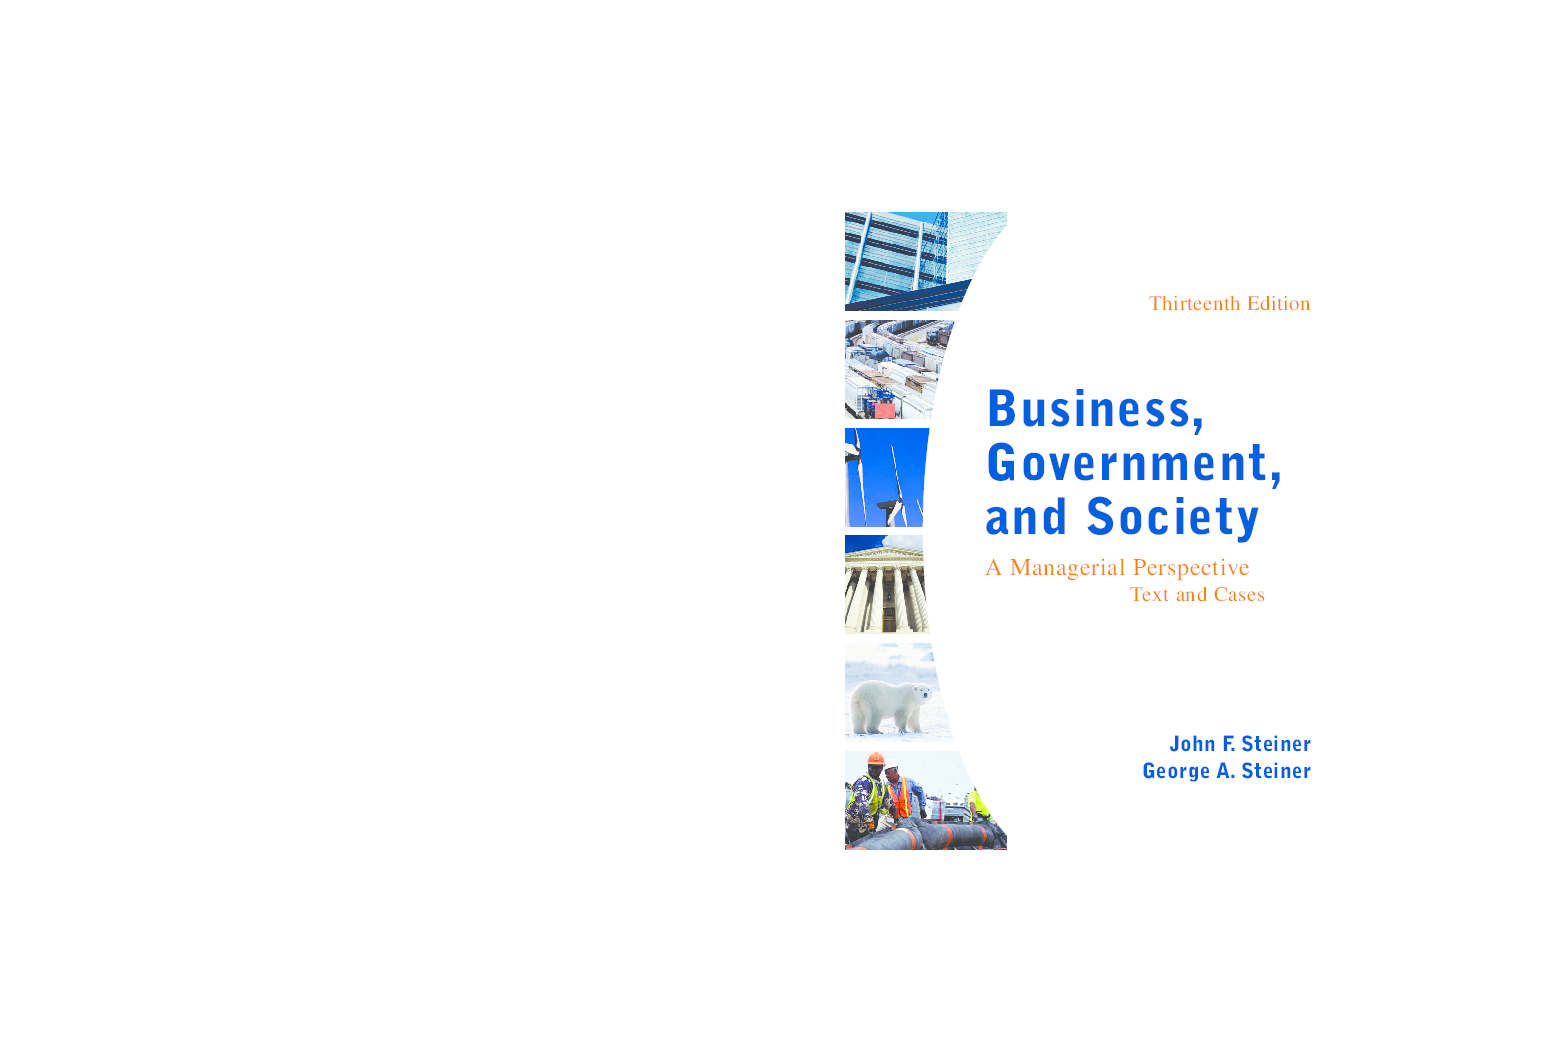 PDF) Business, Government, and Society Thirteenth Edition A